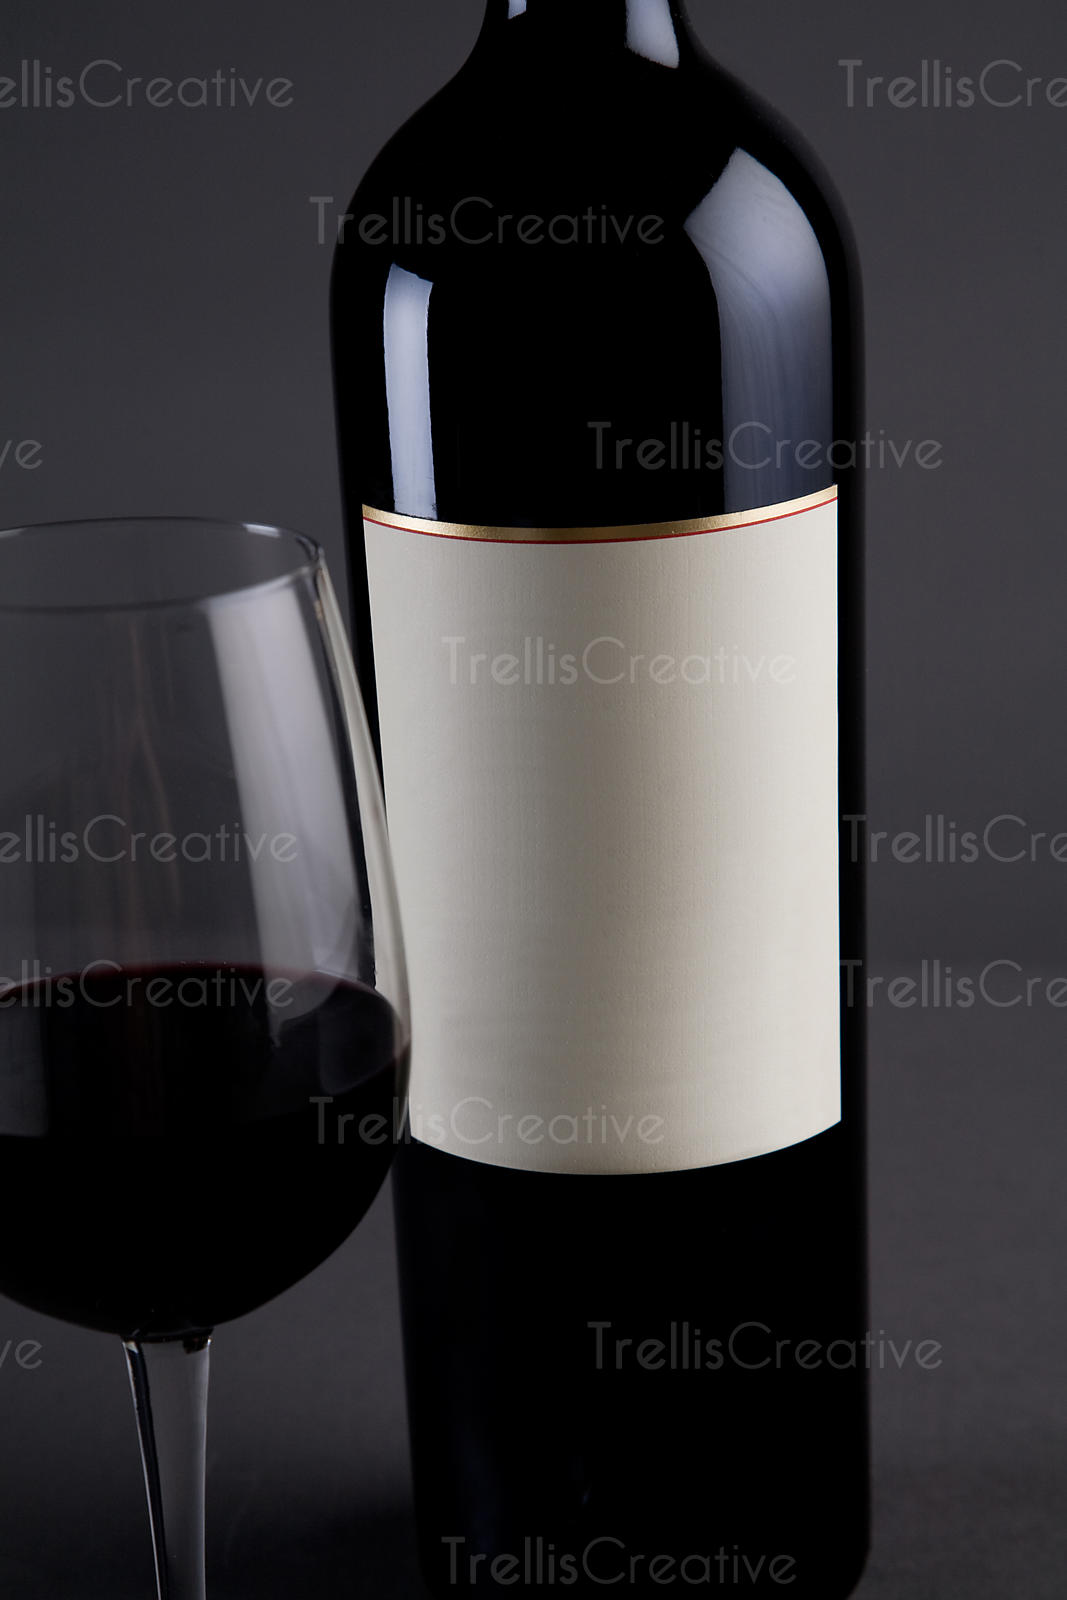 Red Bordeaux wine magnum bottle with cream colored blank label